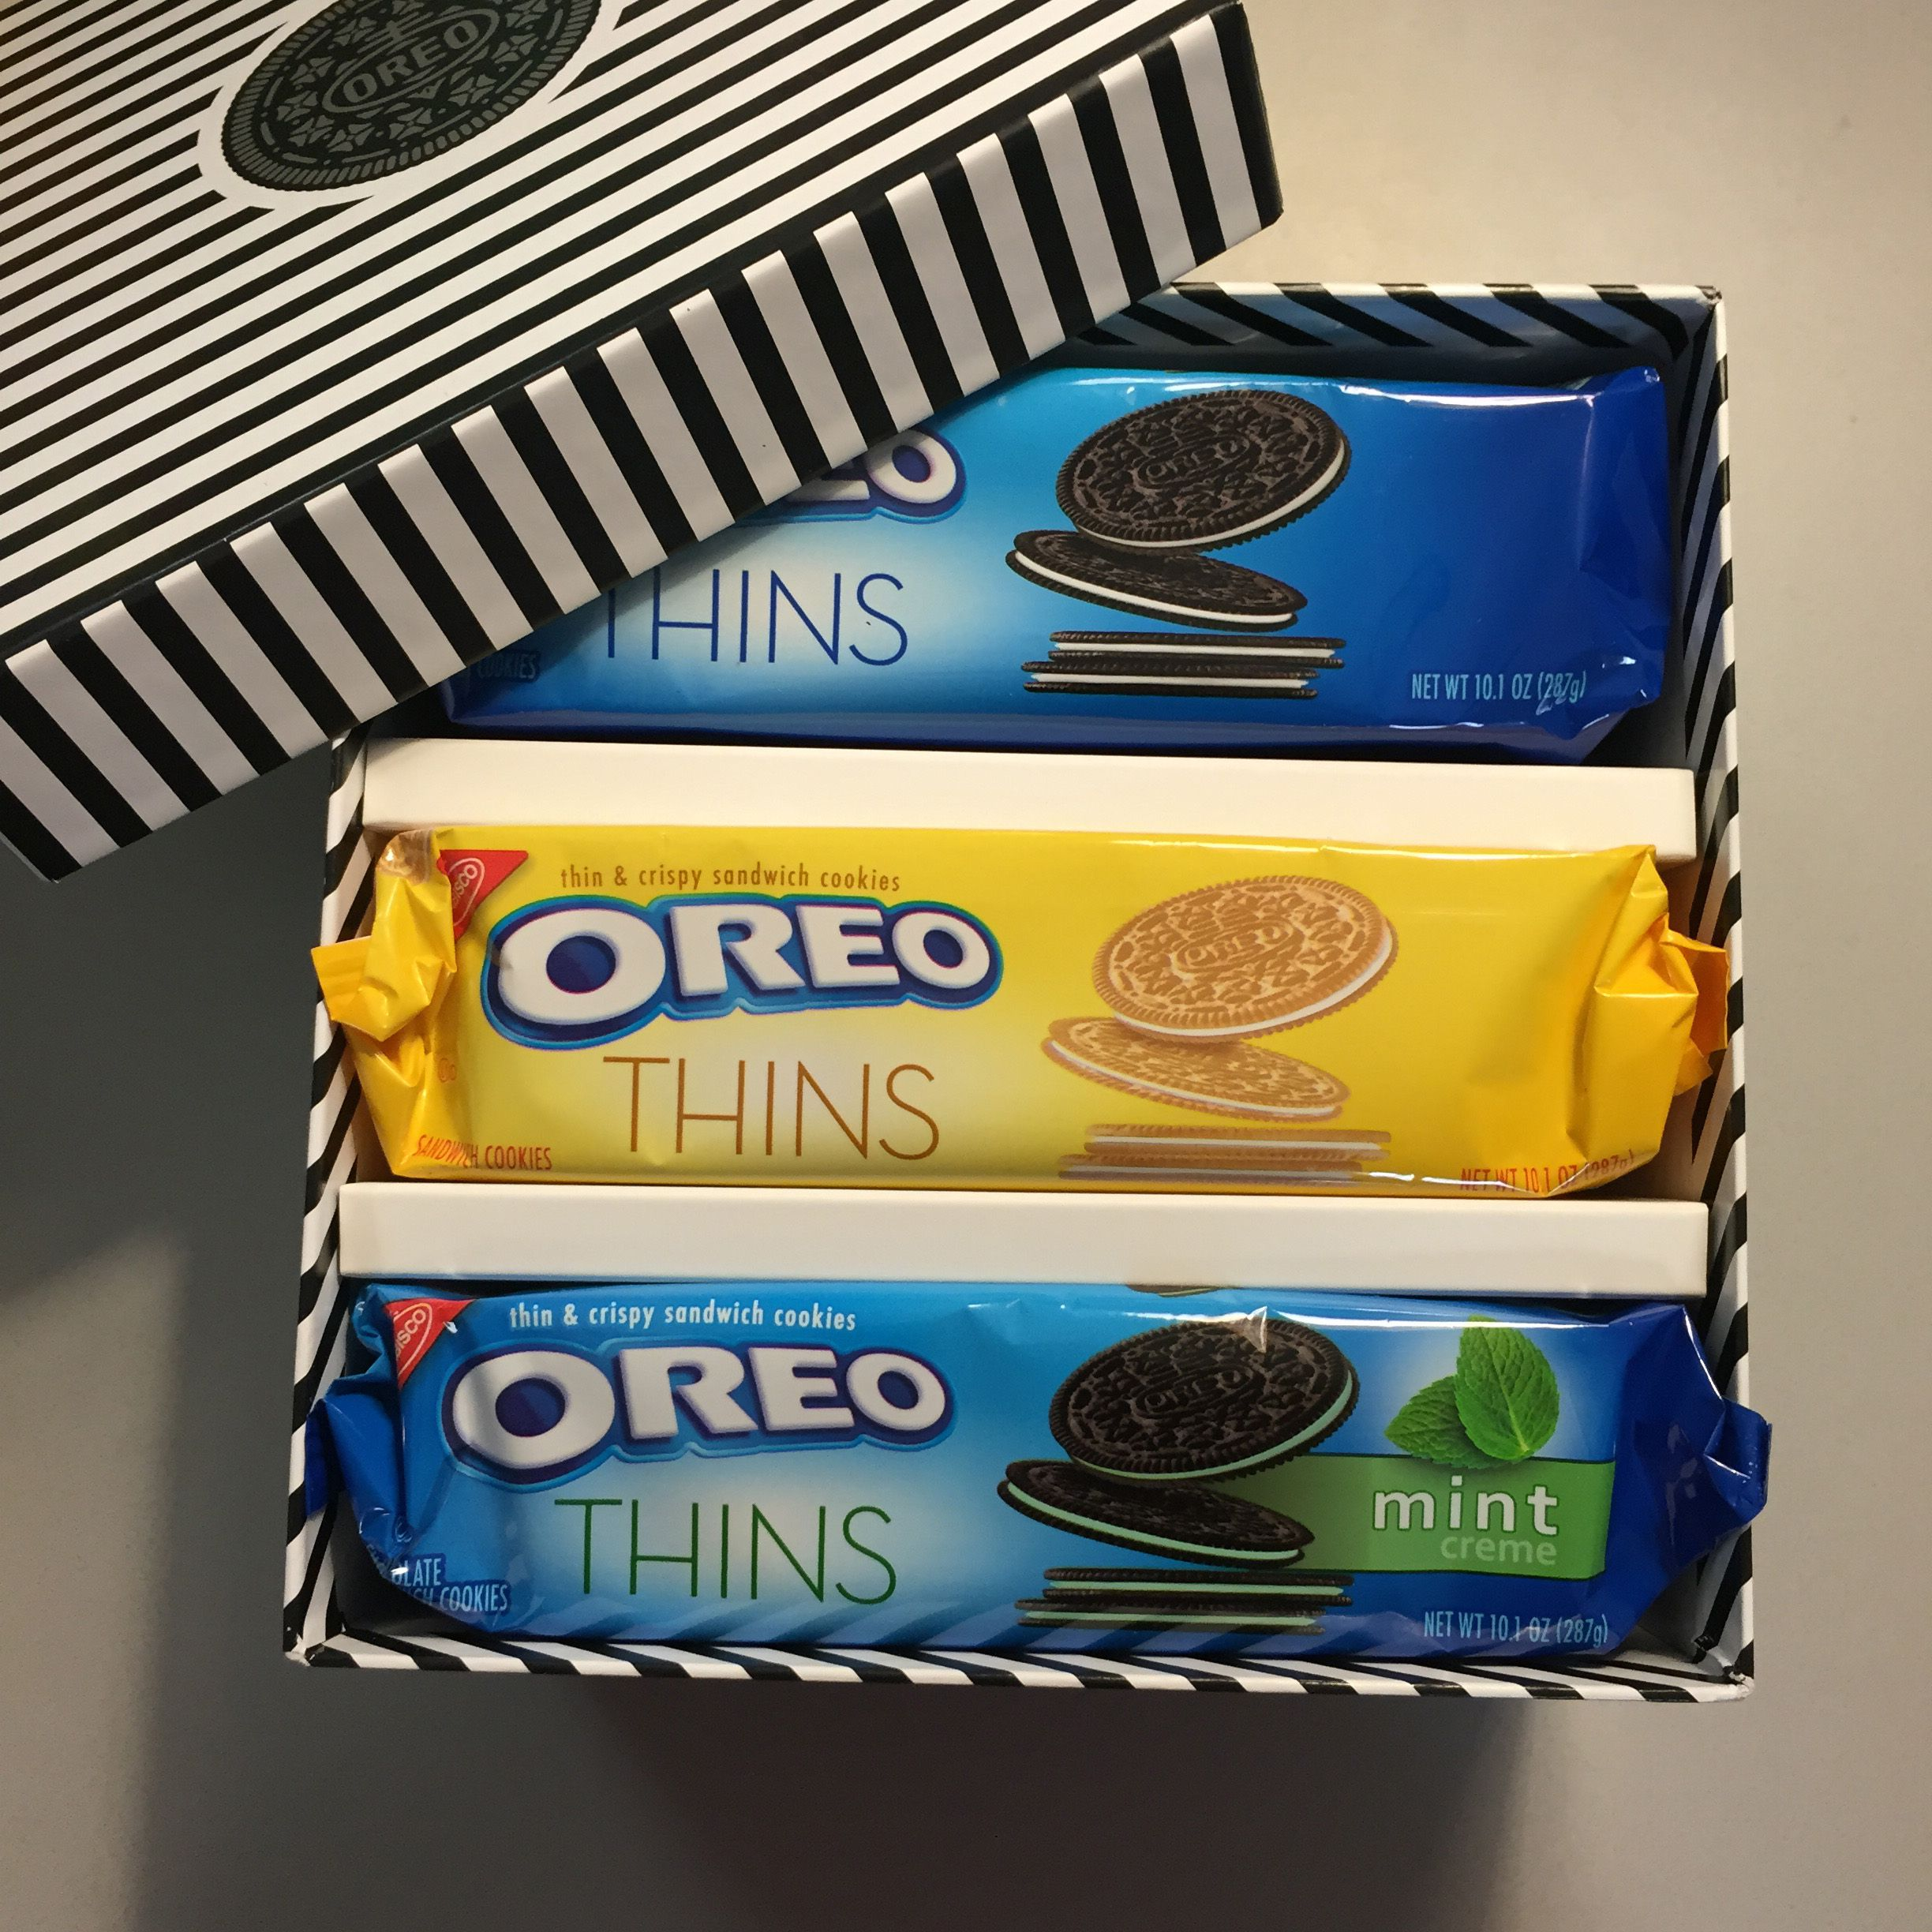 5 things to know about Oreo Thins, which aren't as bad as